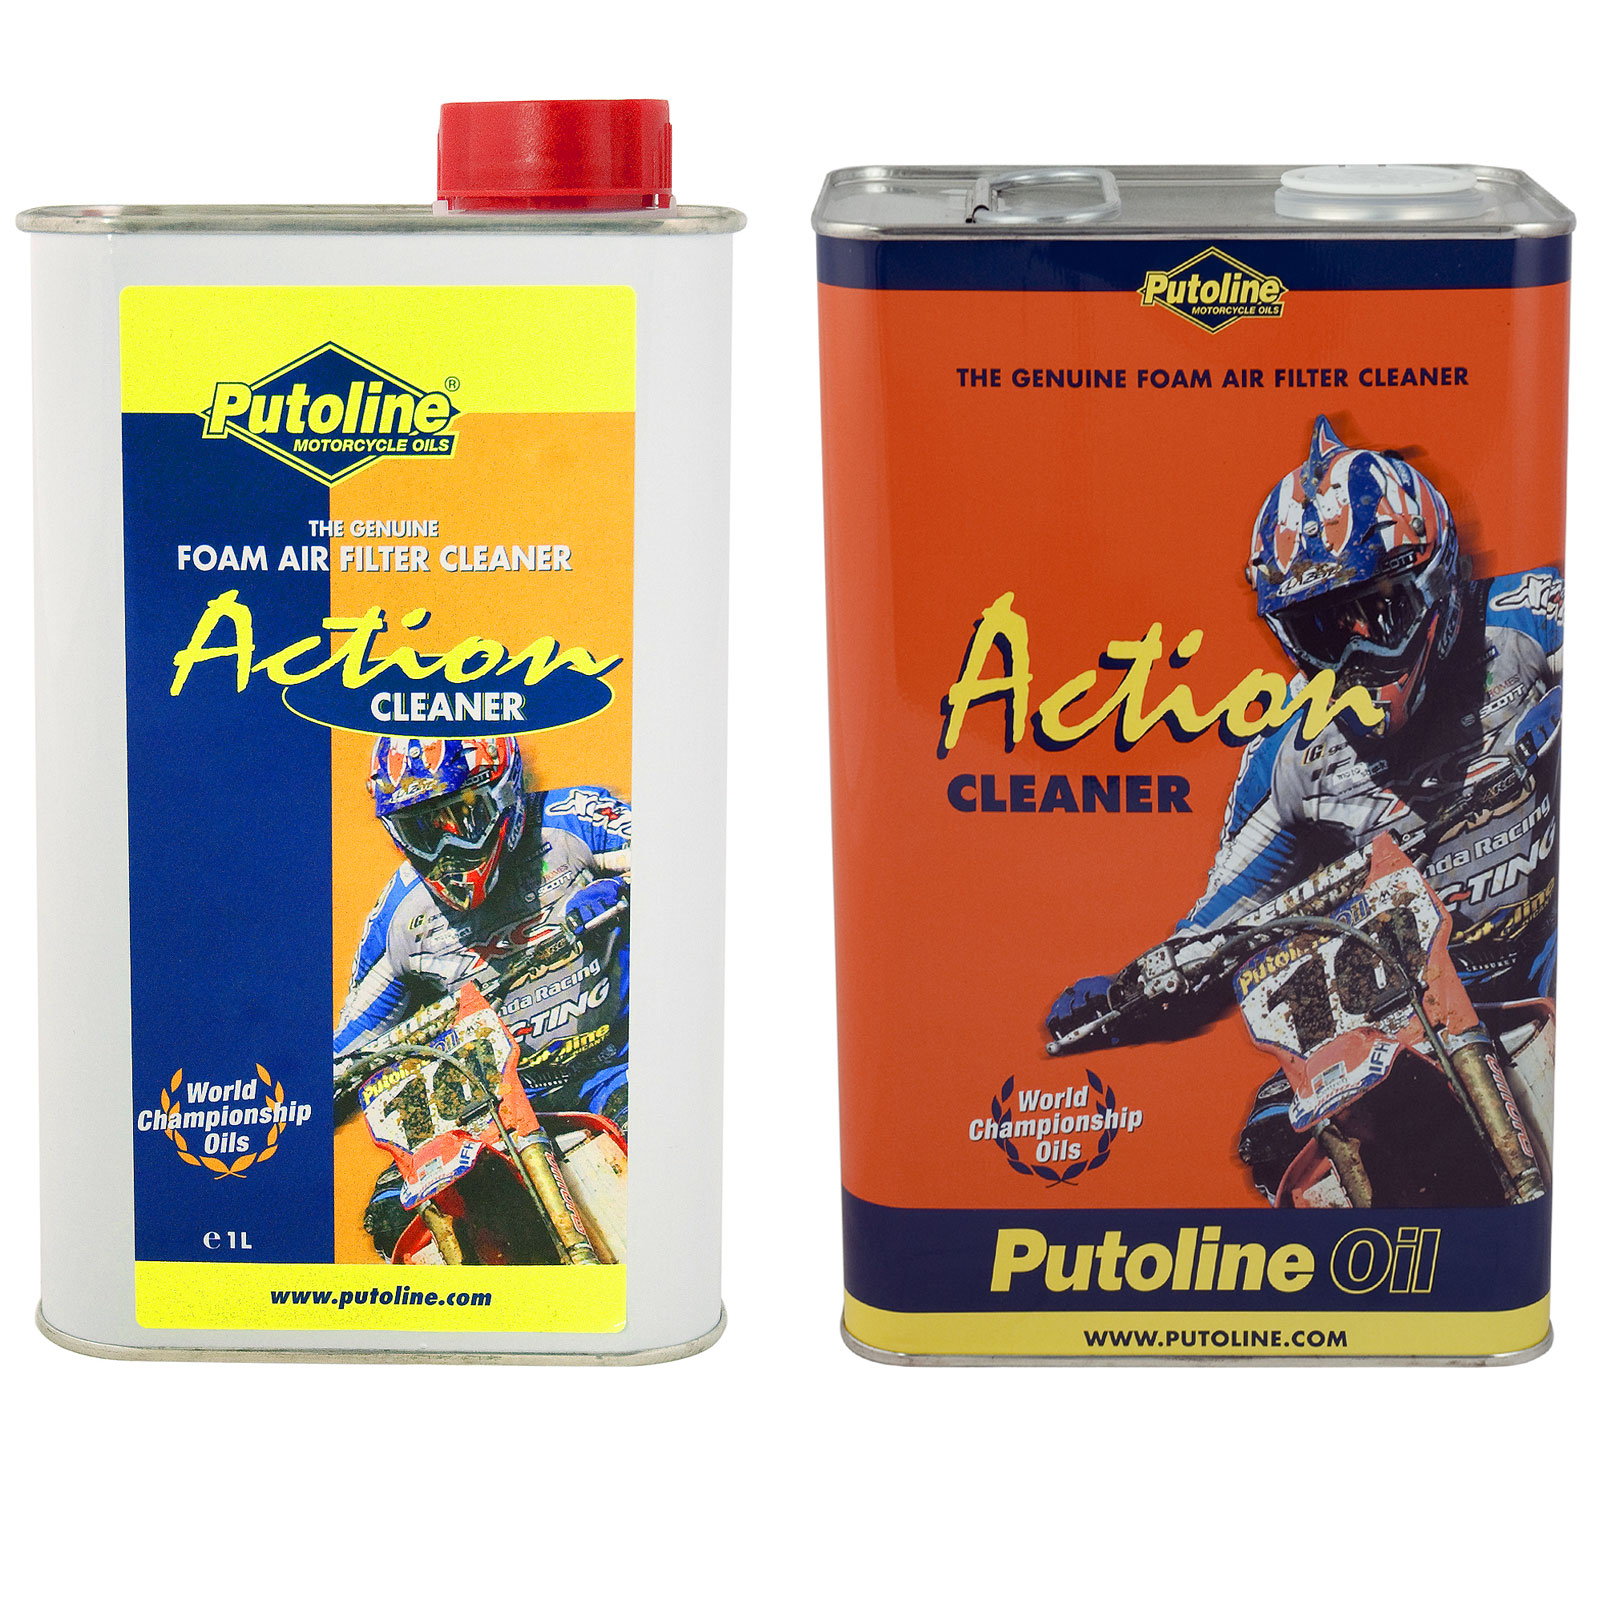 Details about Putoline Action Fluid Motorcycle Foam Air Filter Oil and  Cleaner Twin Pack 1L